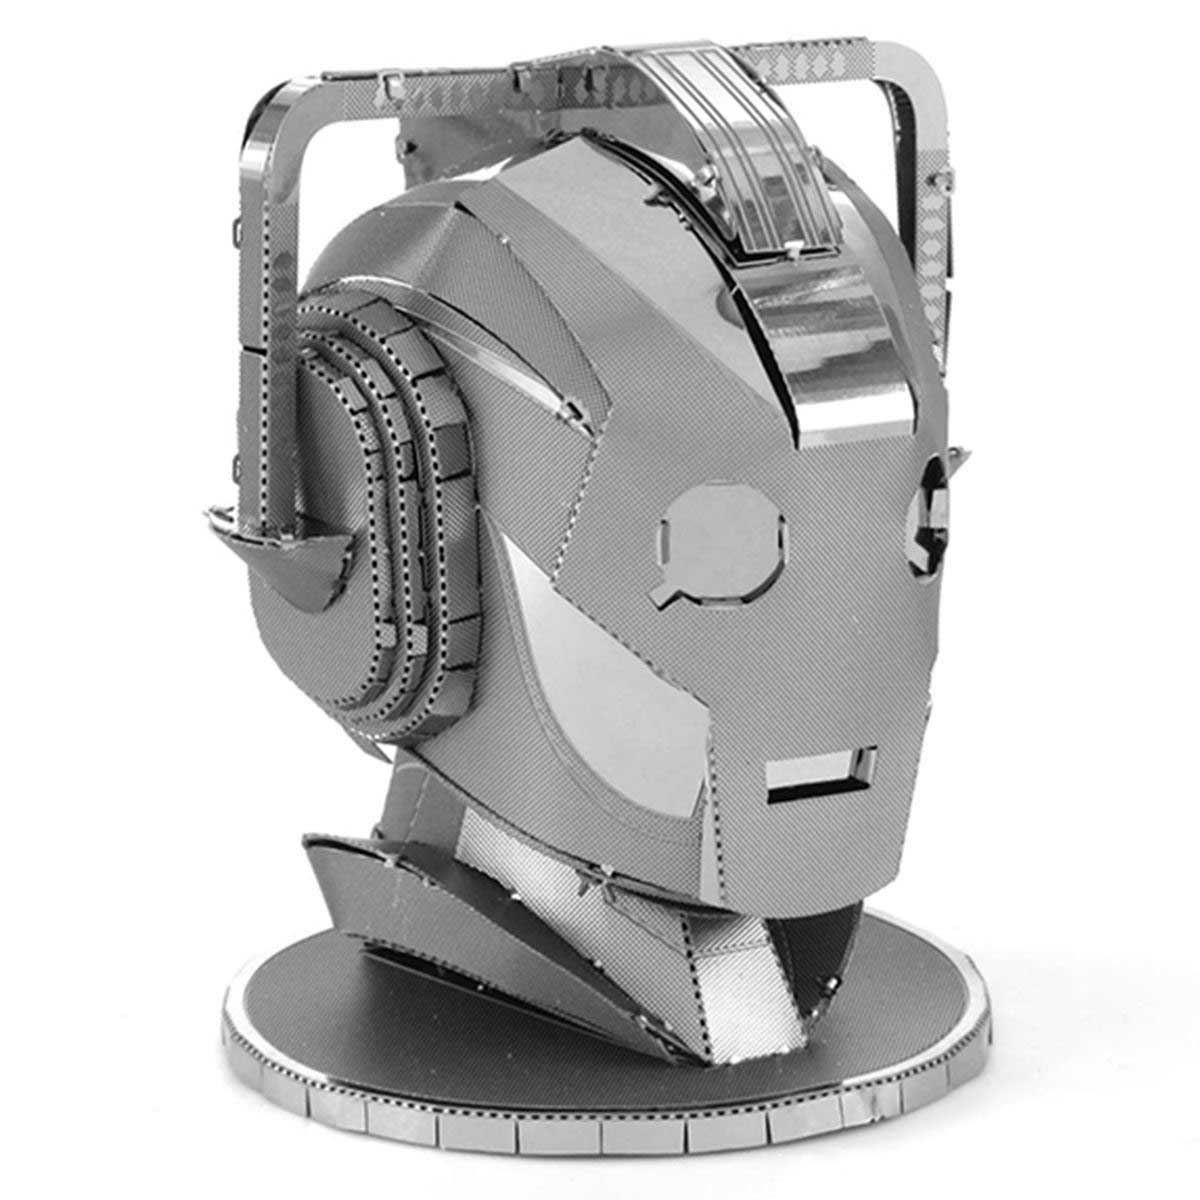 Cyberman Head Movies / Books / TV Metal Puzzles